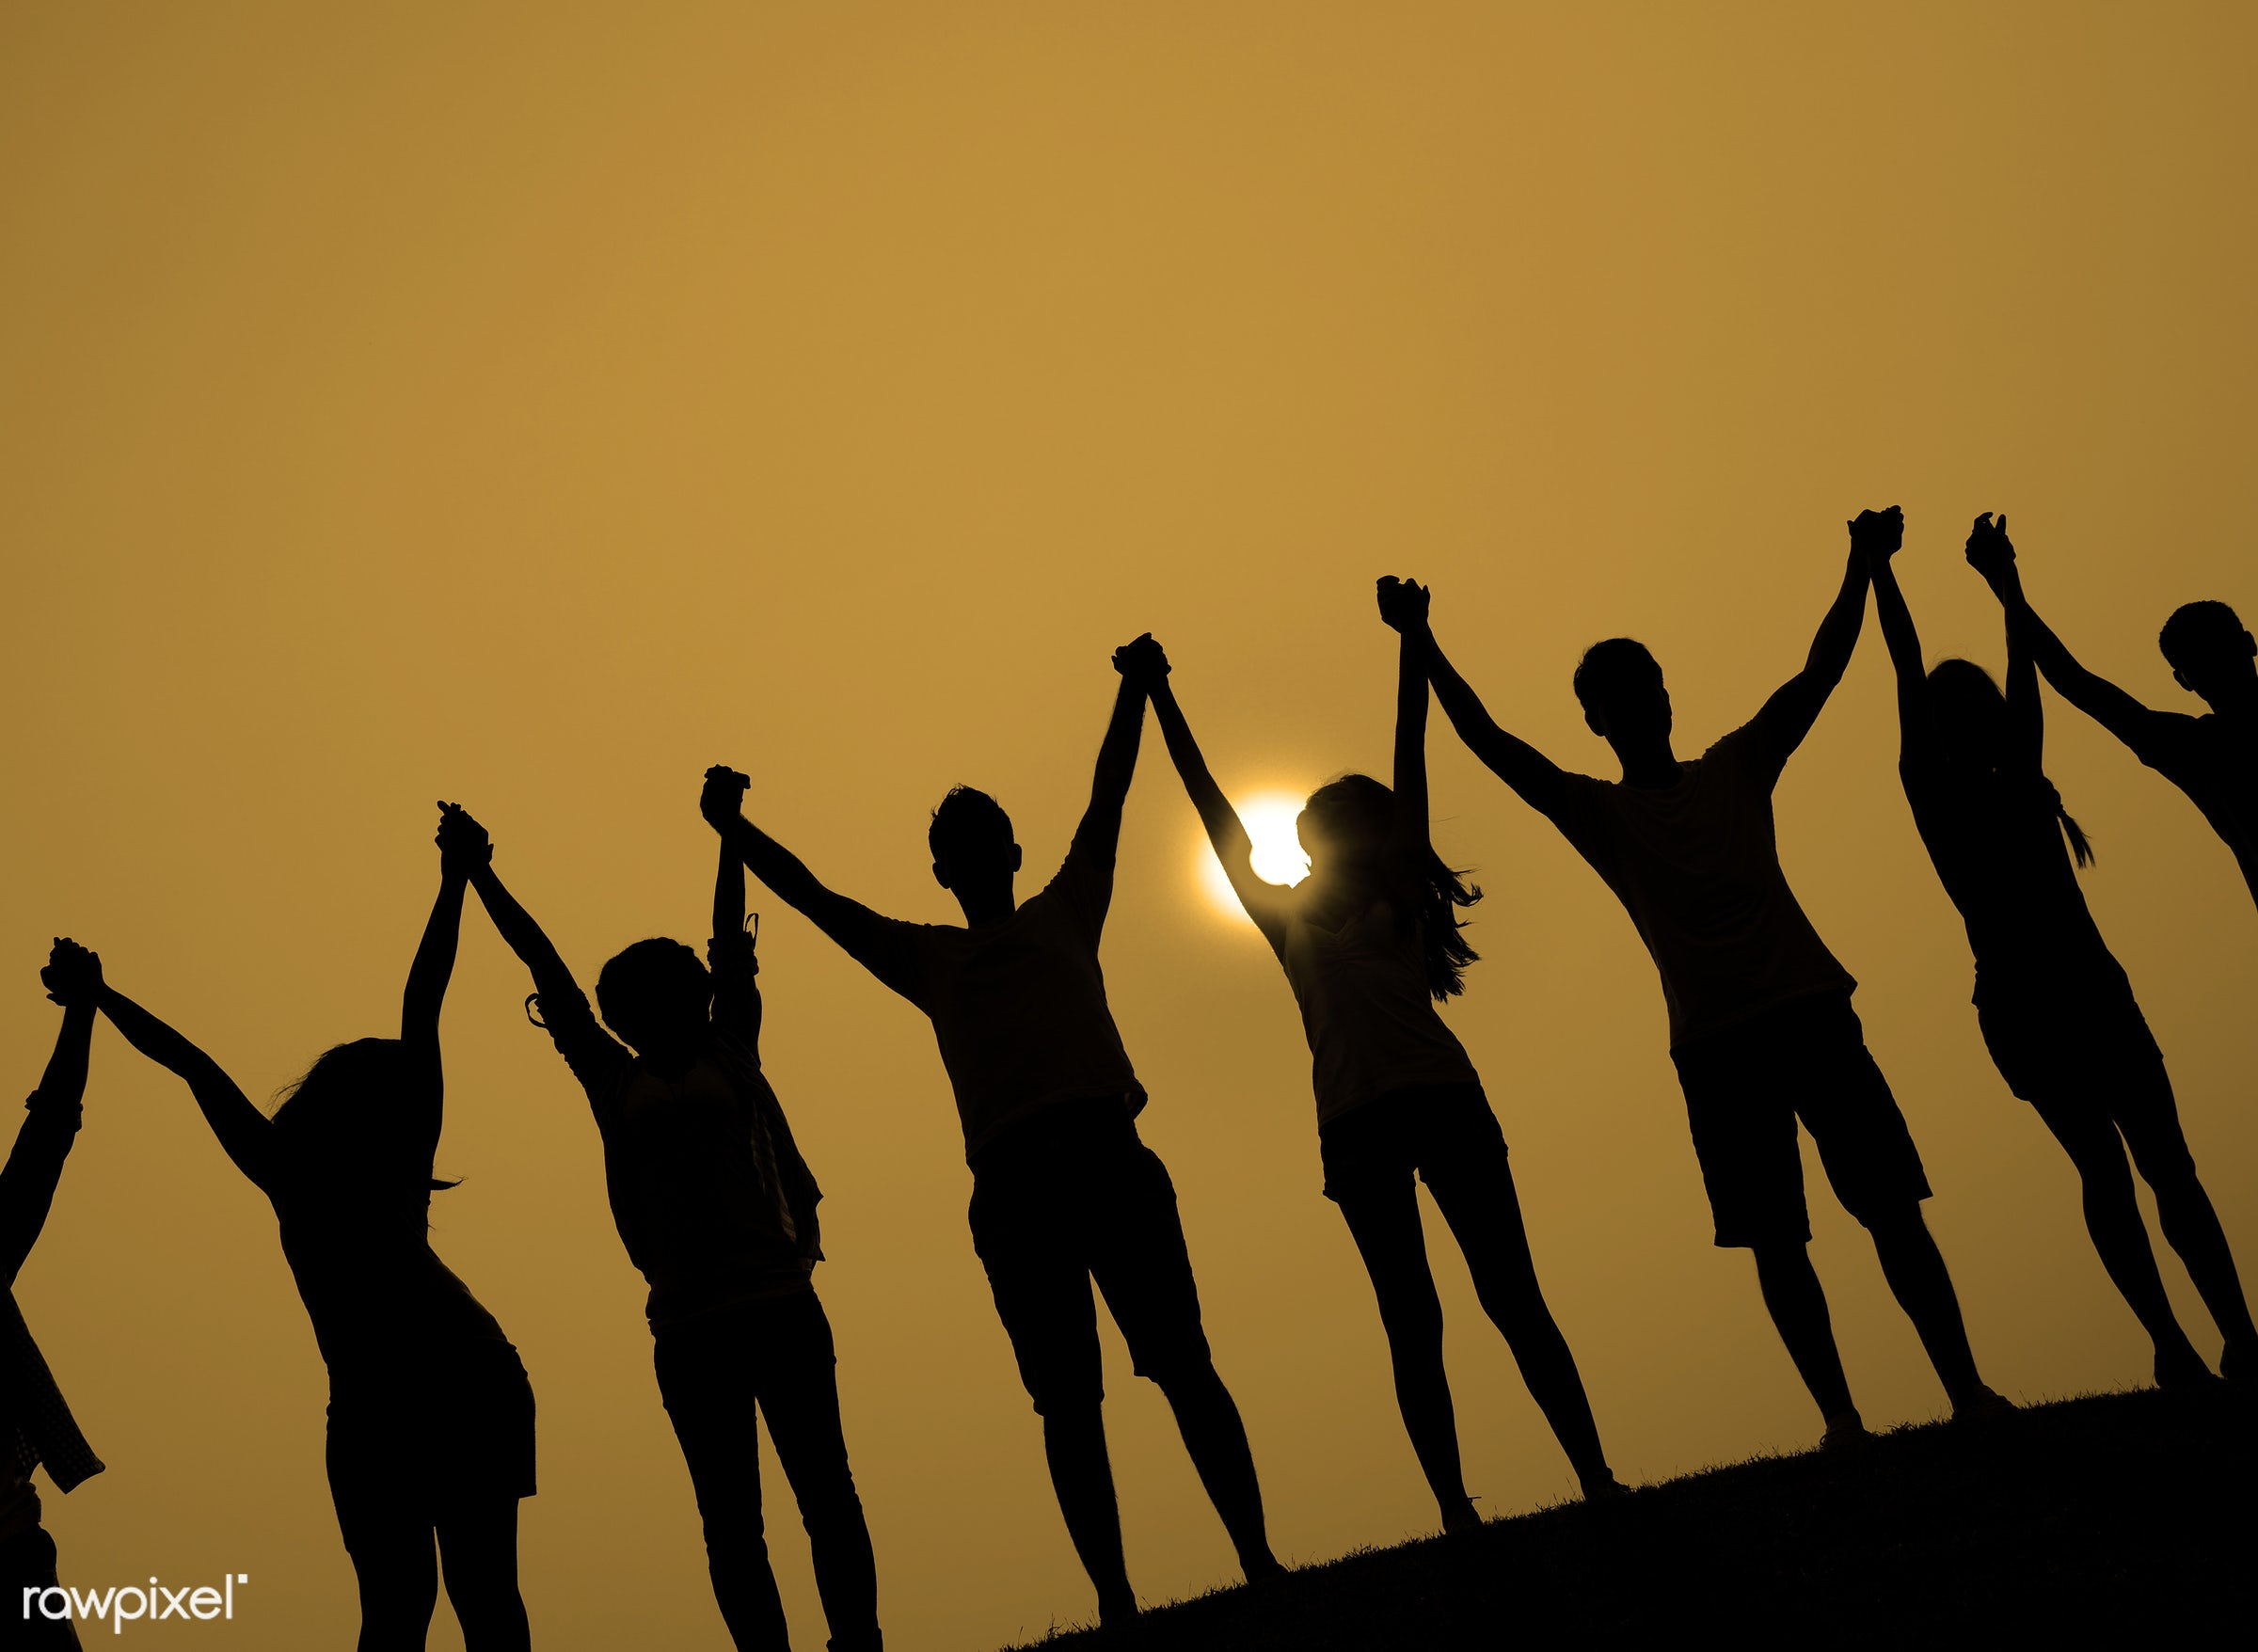 achievement, arms outstretched, arms raised, backlit, casual, celebration, cheerful, color image, community, community,...